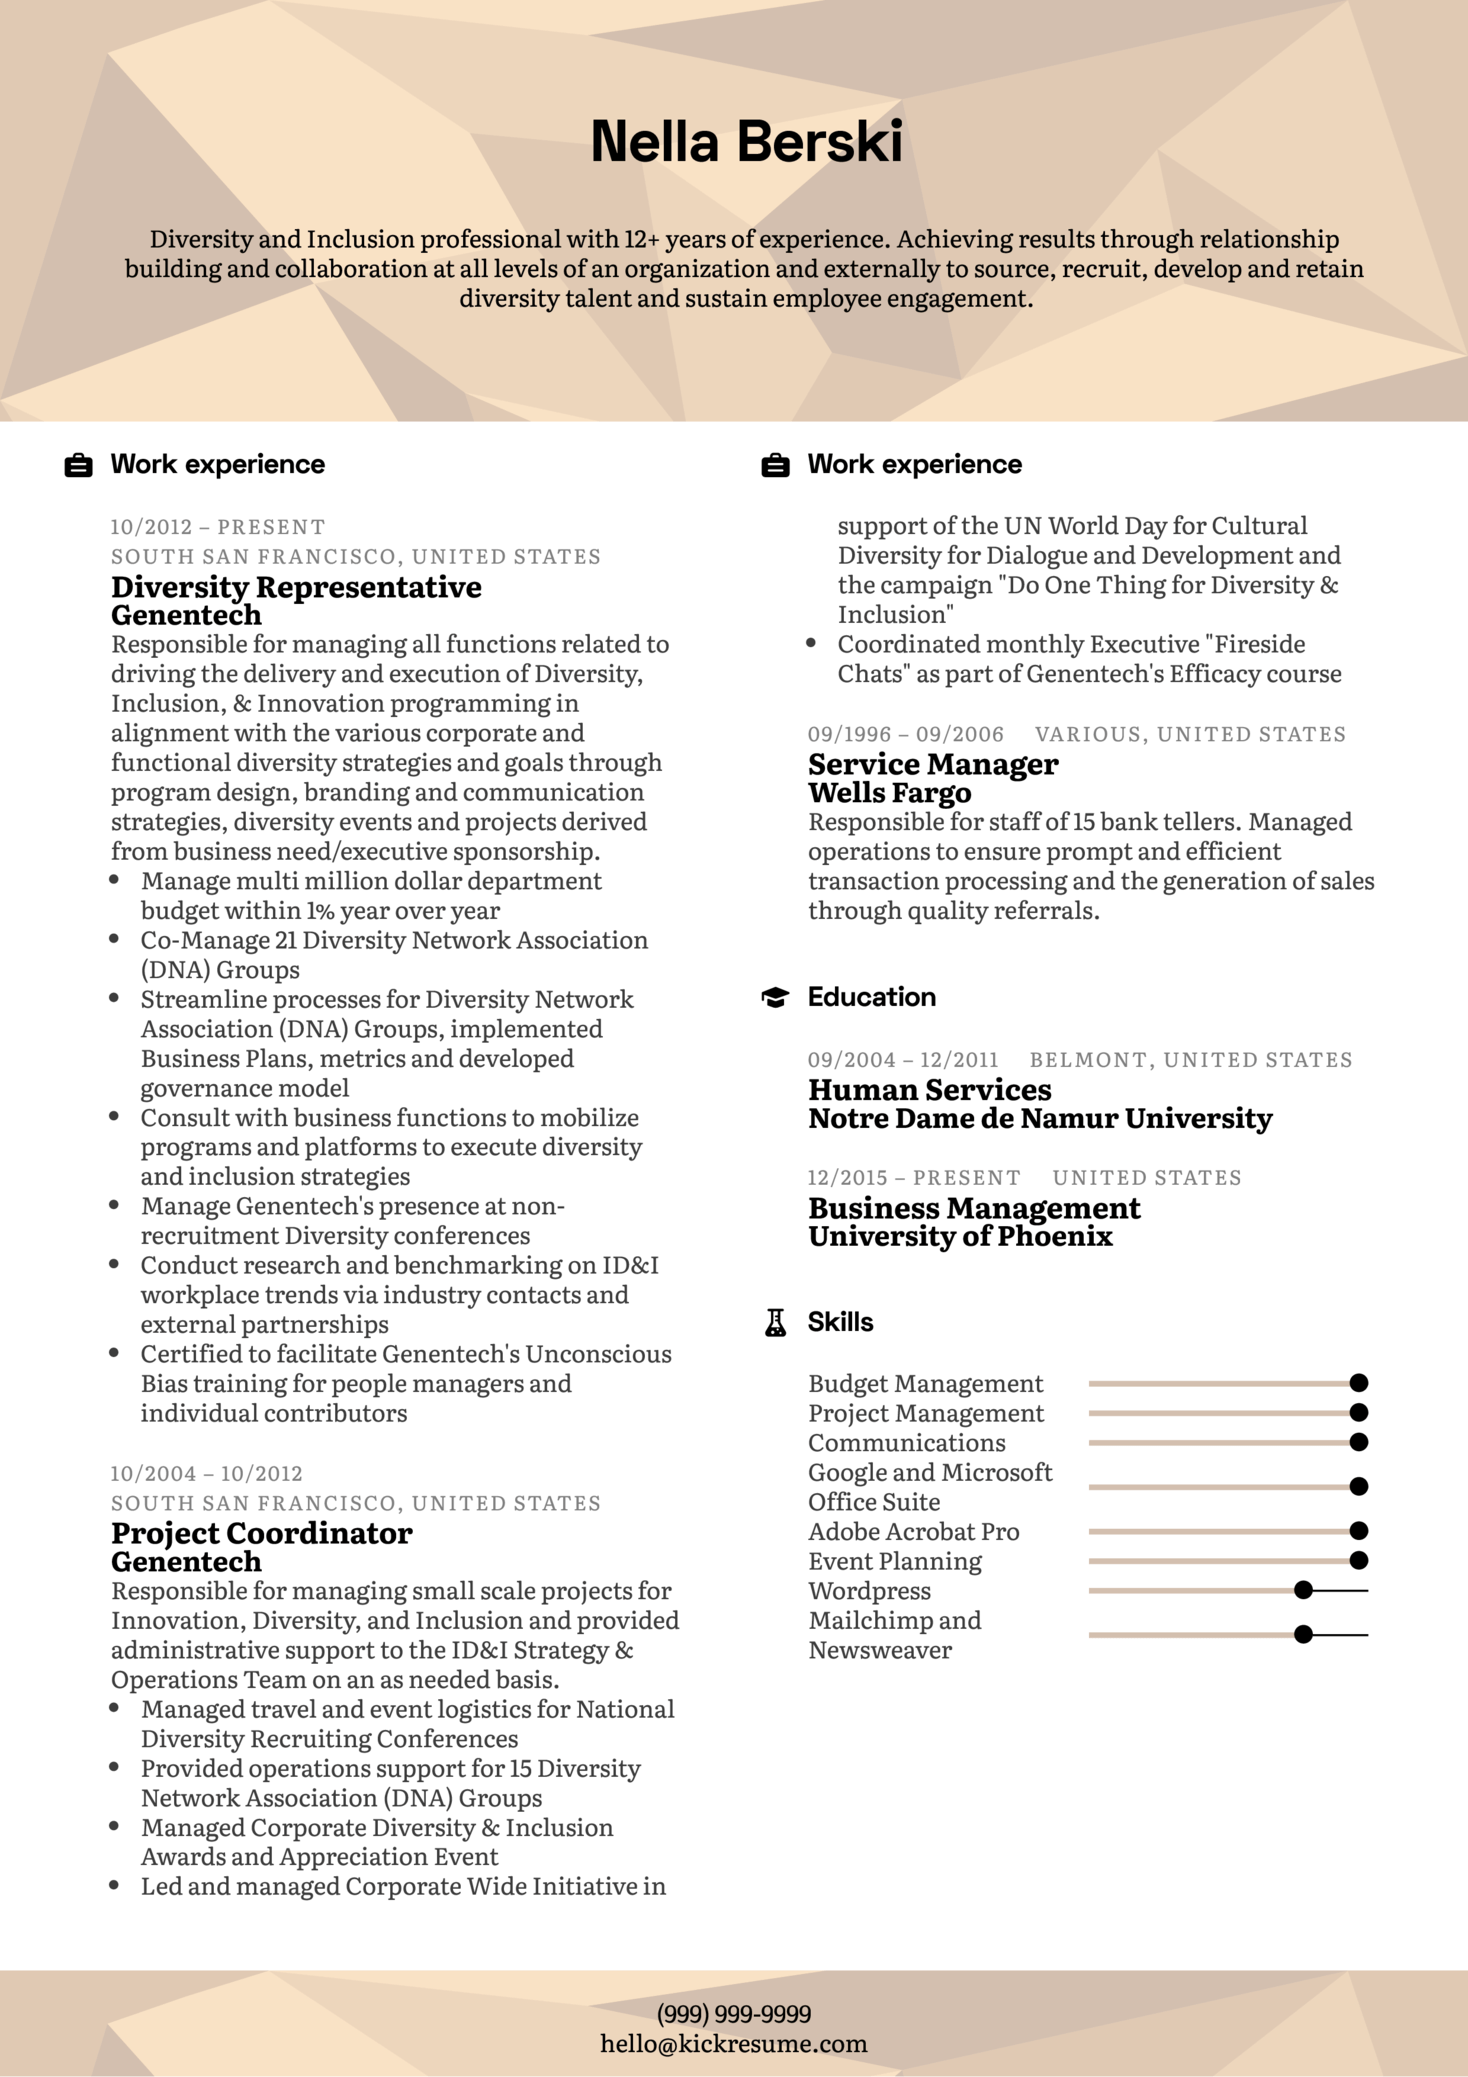 Resume Examples by Real People: Diversity manager resume sample at ...